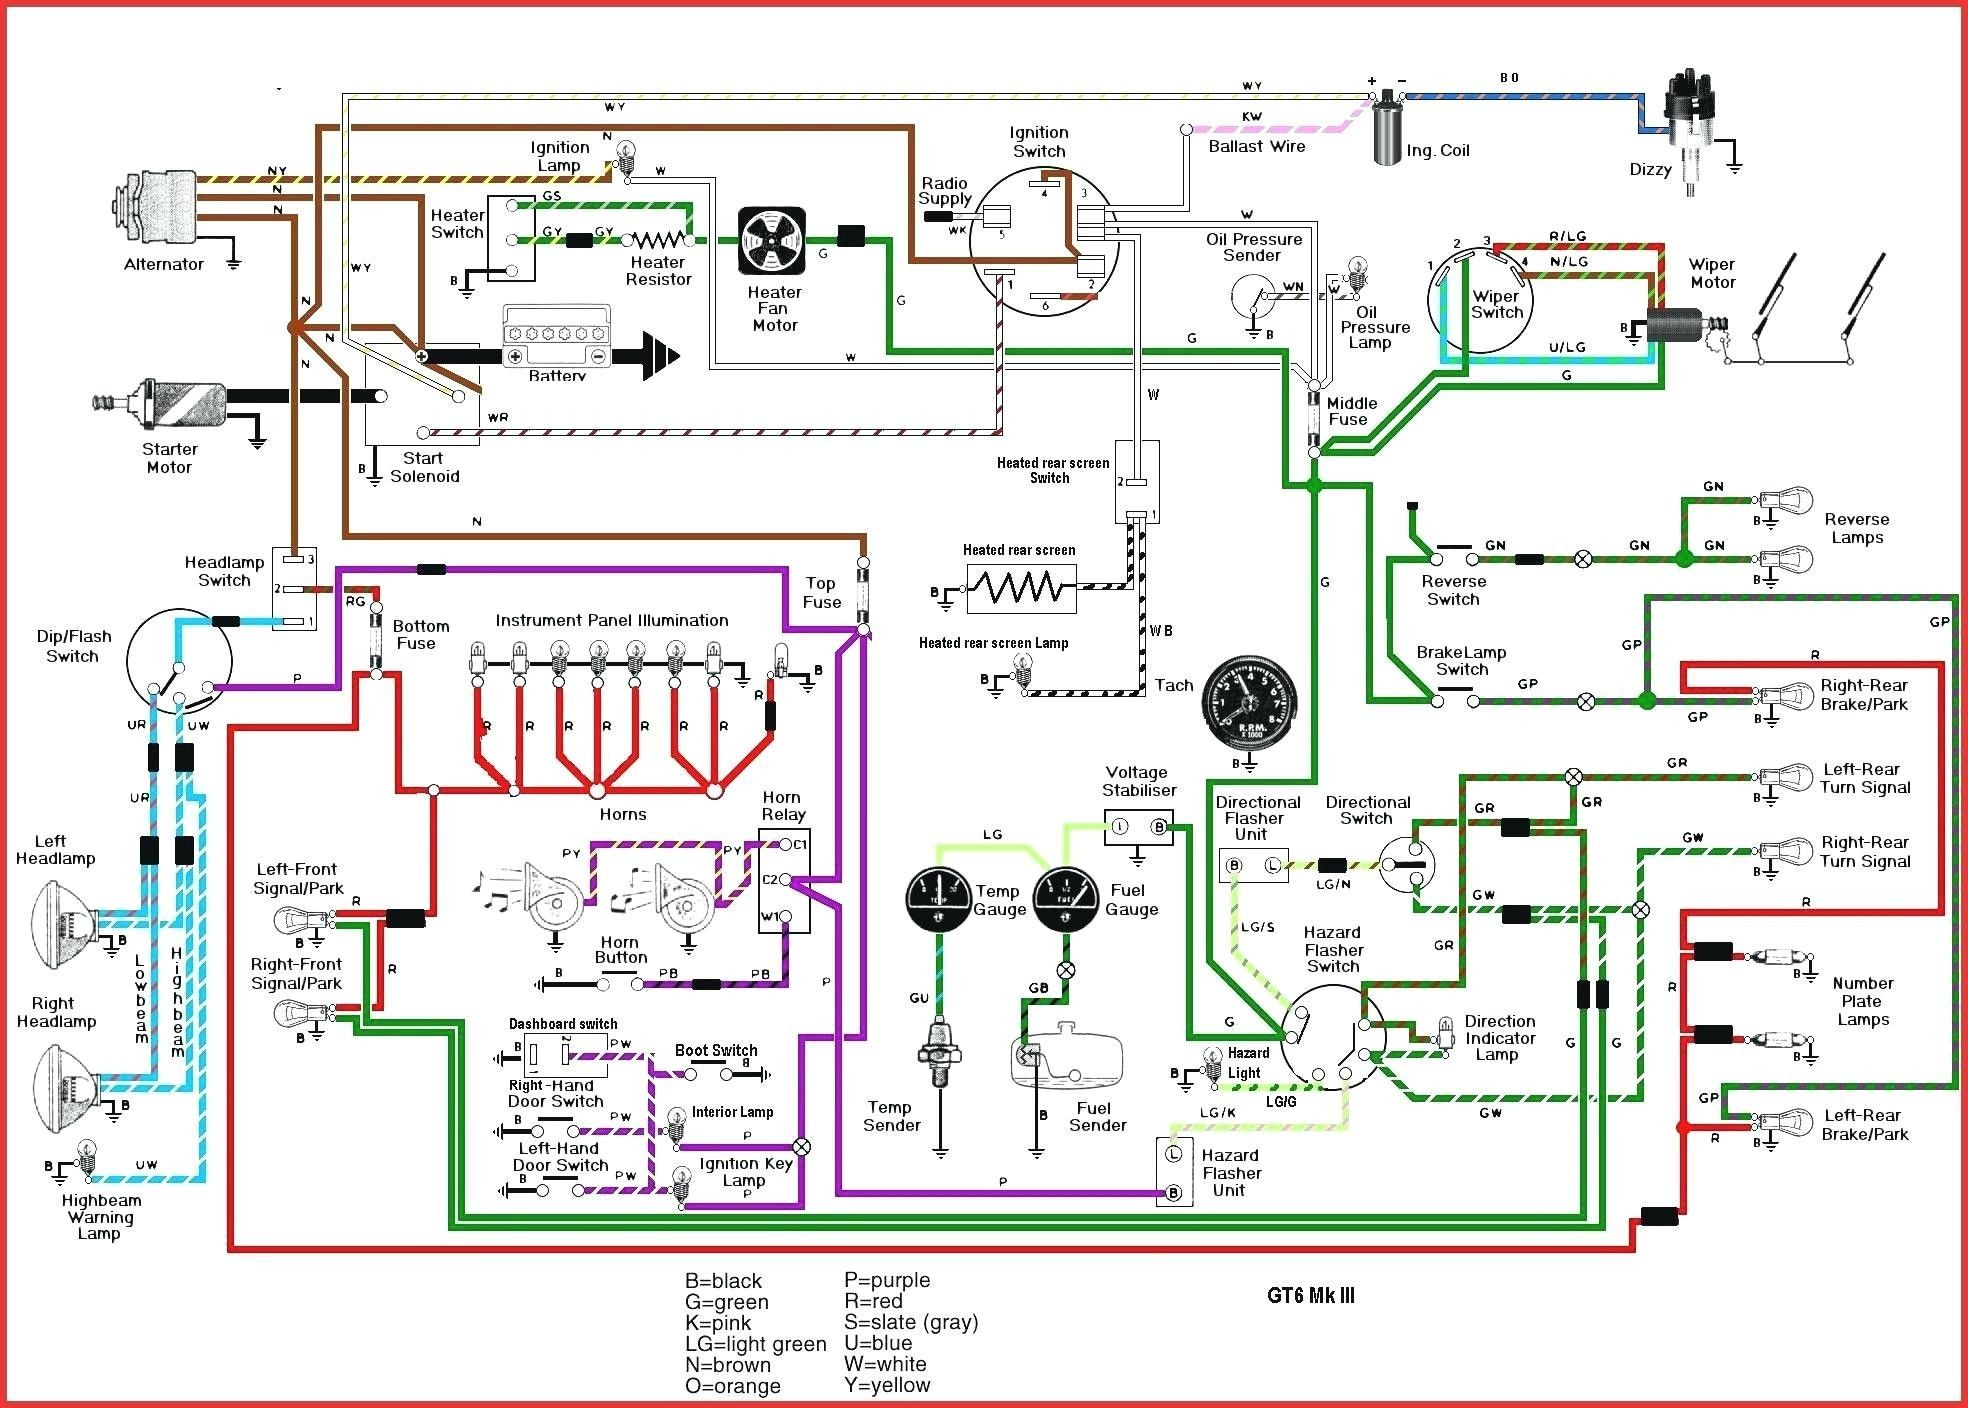 17 Automatic House Plumbing Diagram Http Bookingritzcarlton Info 17 Automatic House Plumbi Electrical Circuit Diagram House Wiring Electrical Wiring Diagram